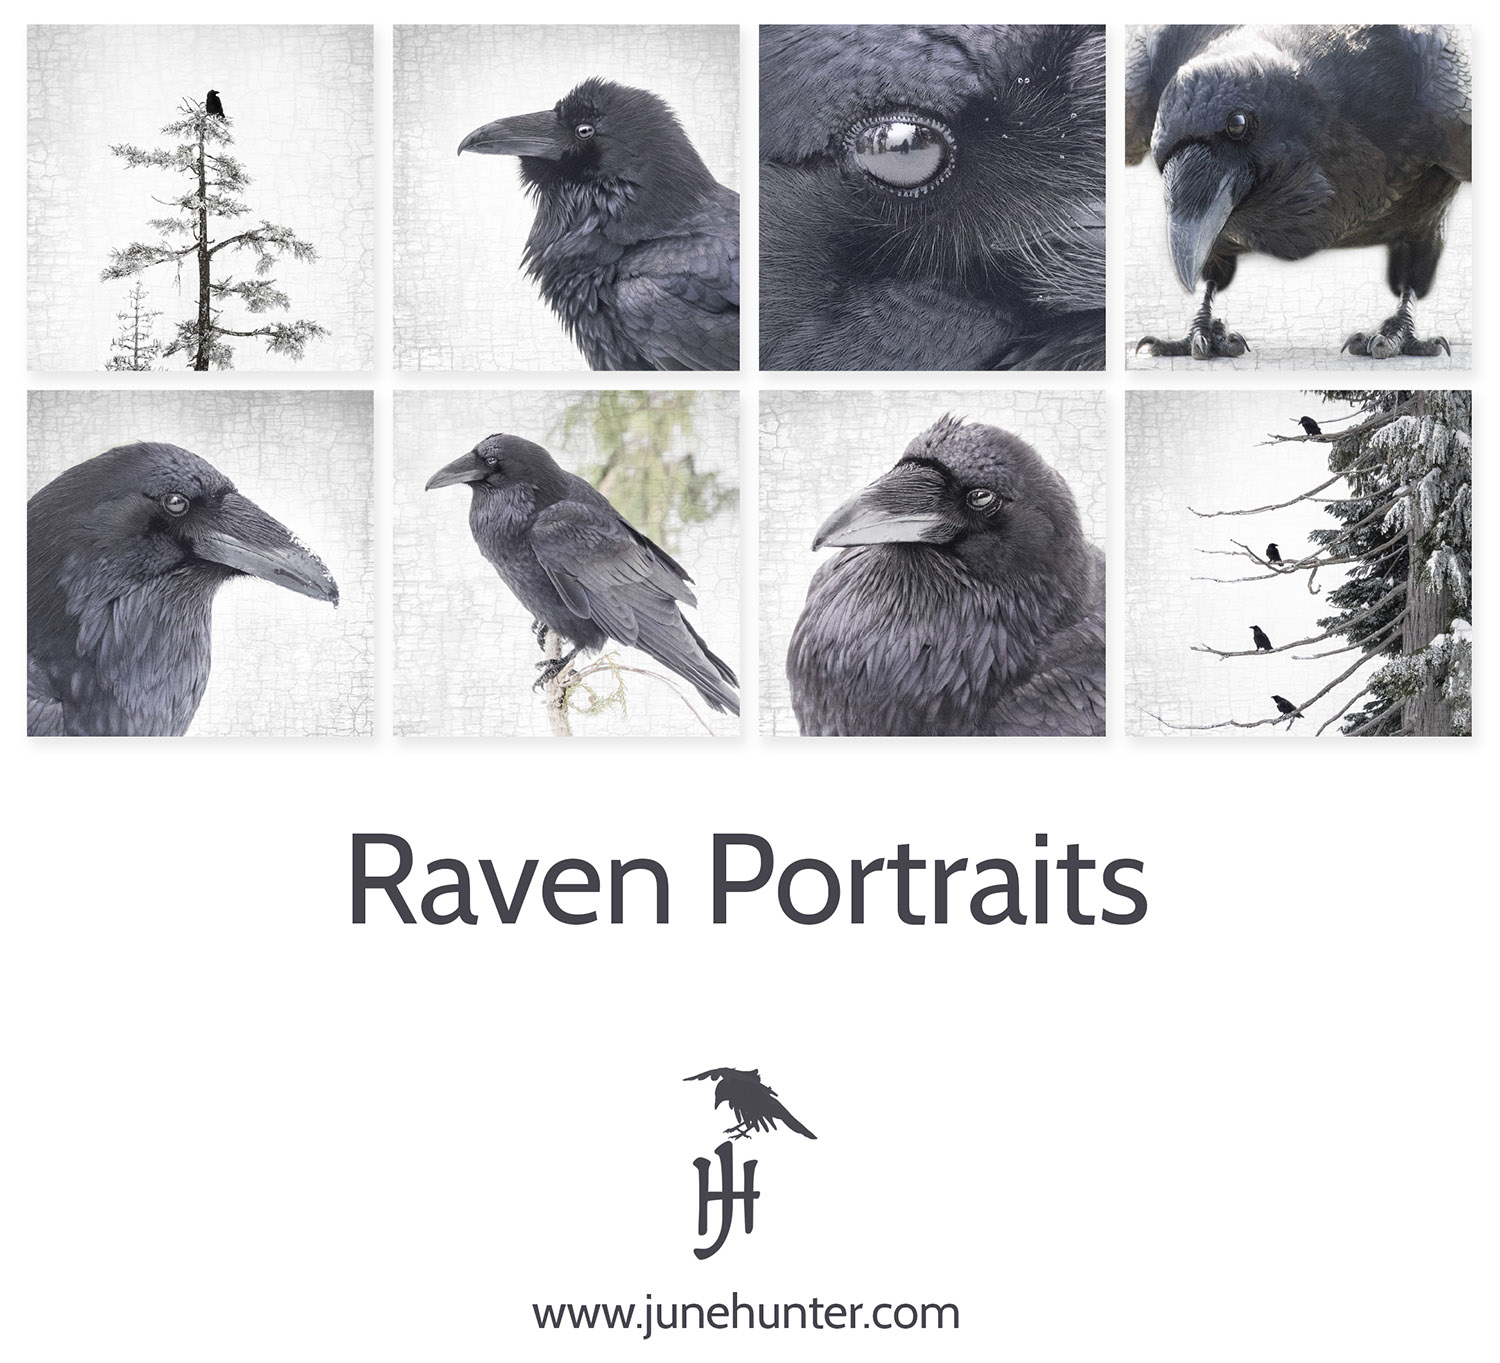 Learning to Speak Raven | The Urban Nature Enthusiast